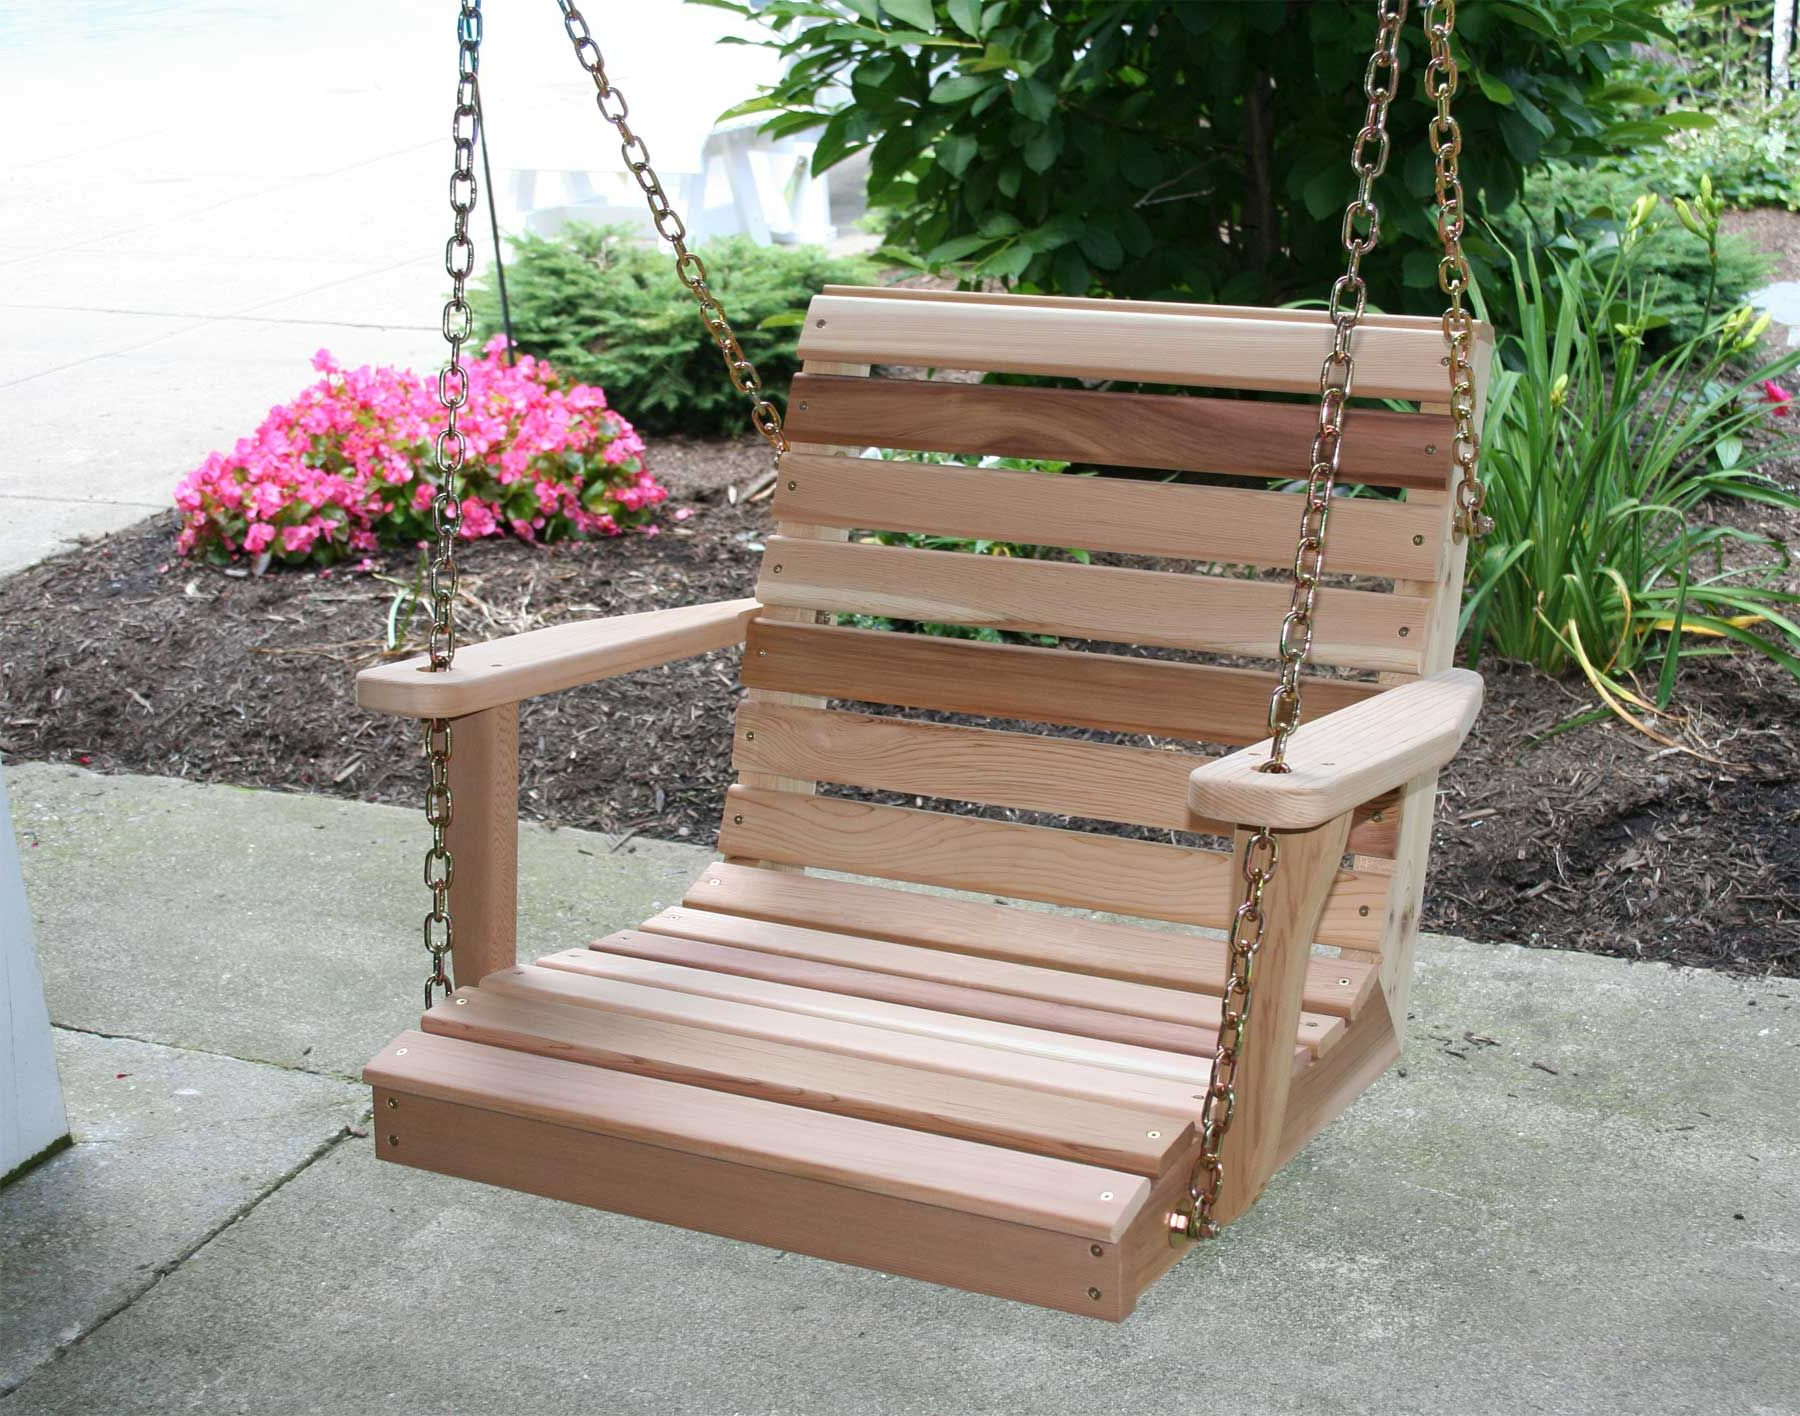 Classic Porch Swings For Preferred Red Cedar American Classic Porch Swing – 2 Porch Swing Shown (View 12 of 30)